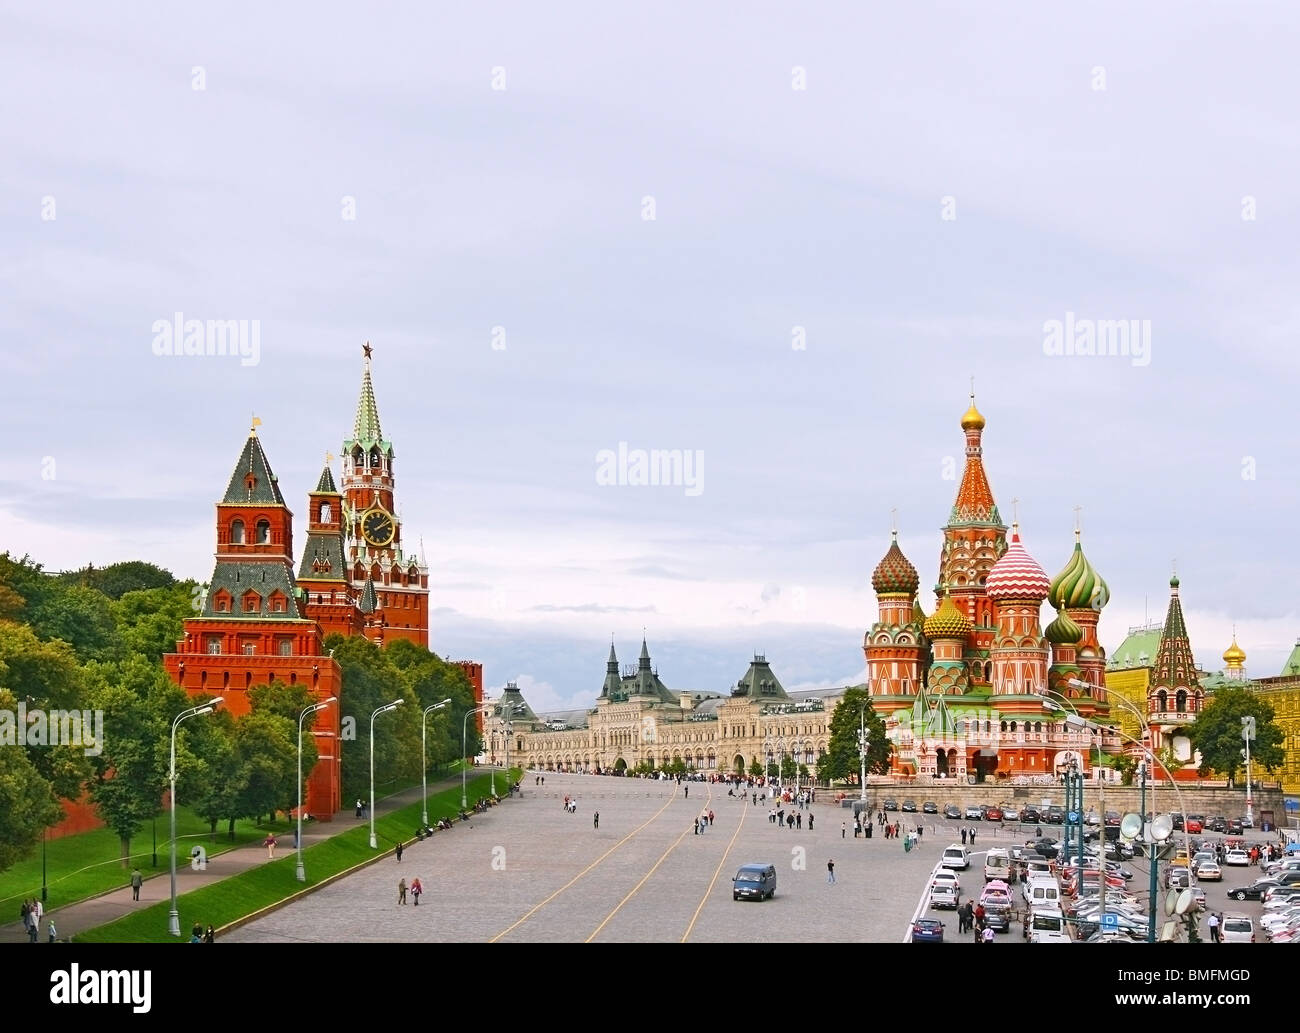 Red Square in Moscow, Russian Federation. National Landmark. Tourist Destination. Stock Photo